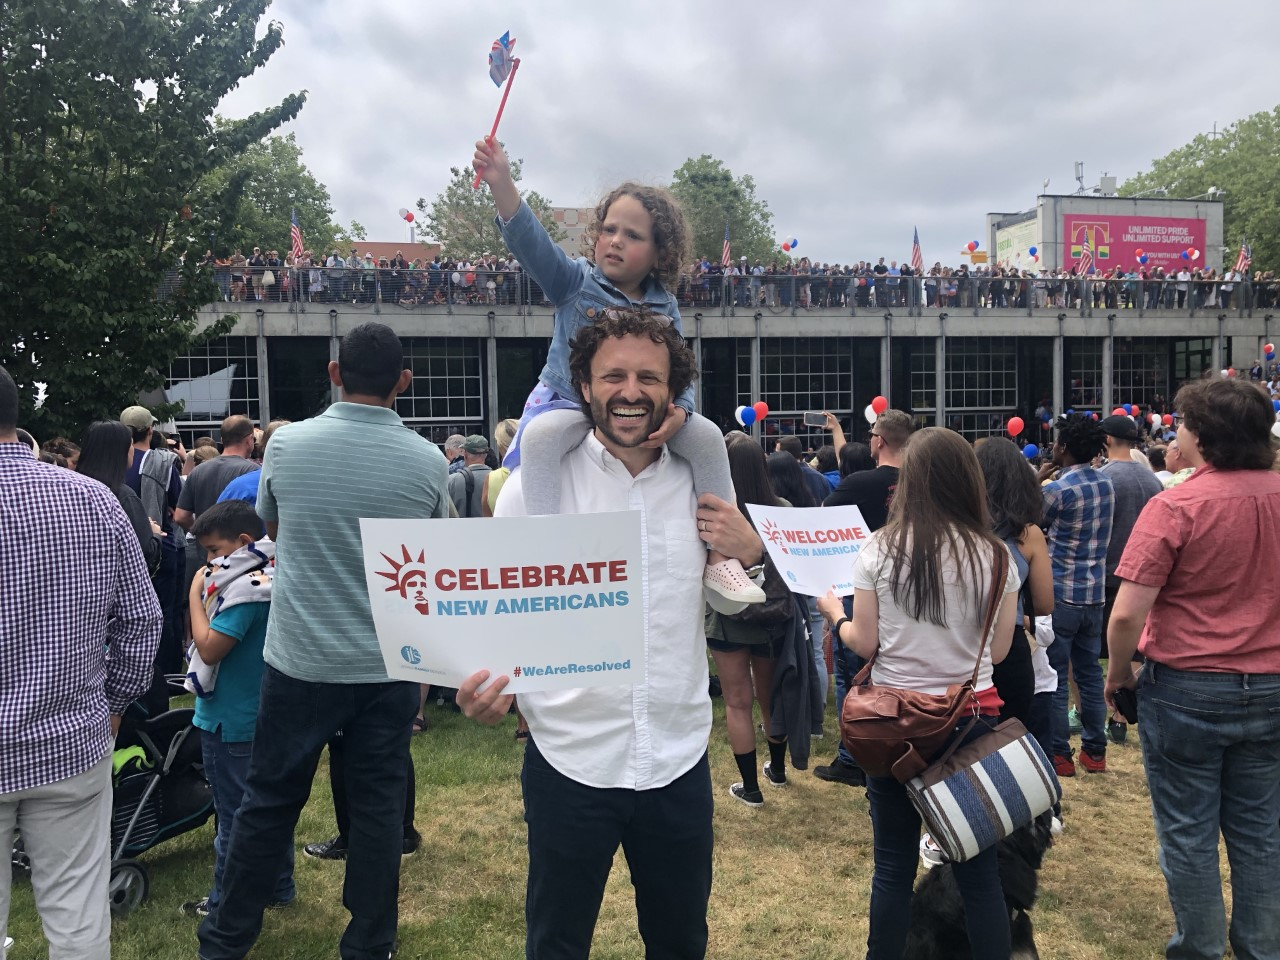 Celebrating New Americans on the Fourth of July